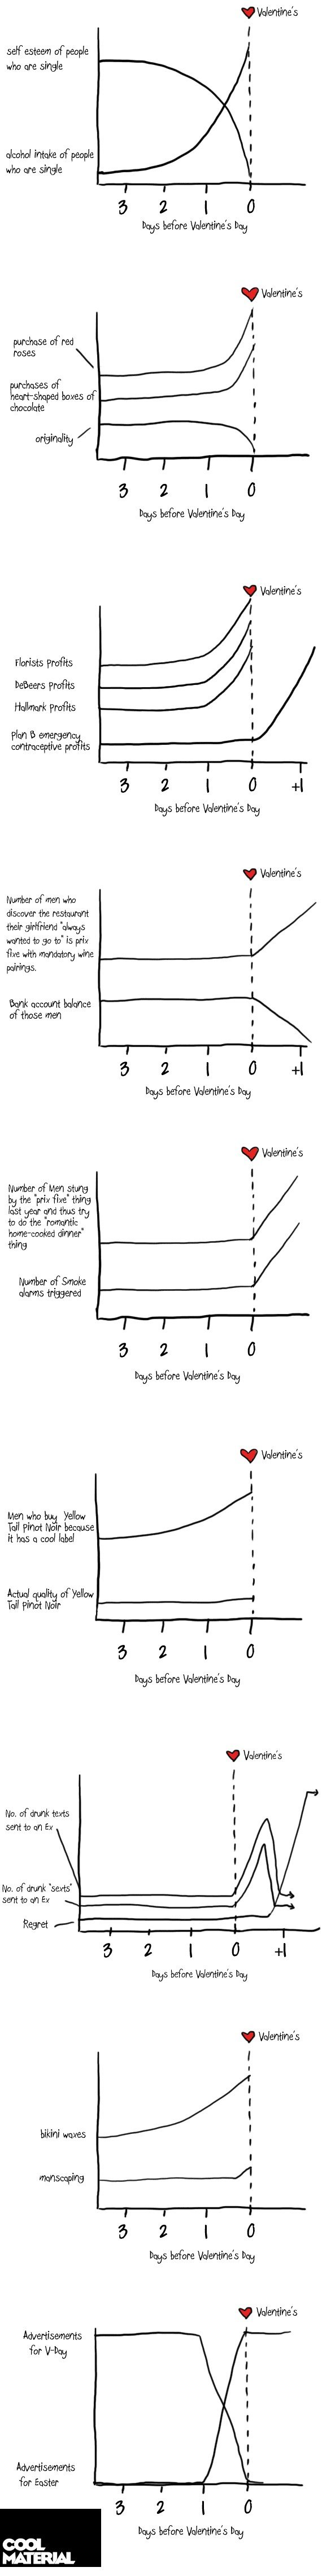 This Just About Sums Up Valentine's Day.. As real as hell.. V Valentine' s sdf esteem who are shale I intake of tooie ', who are single Ms before Valentine' s b